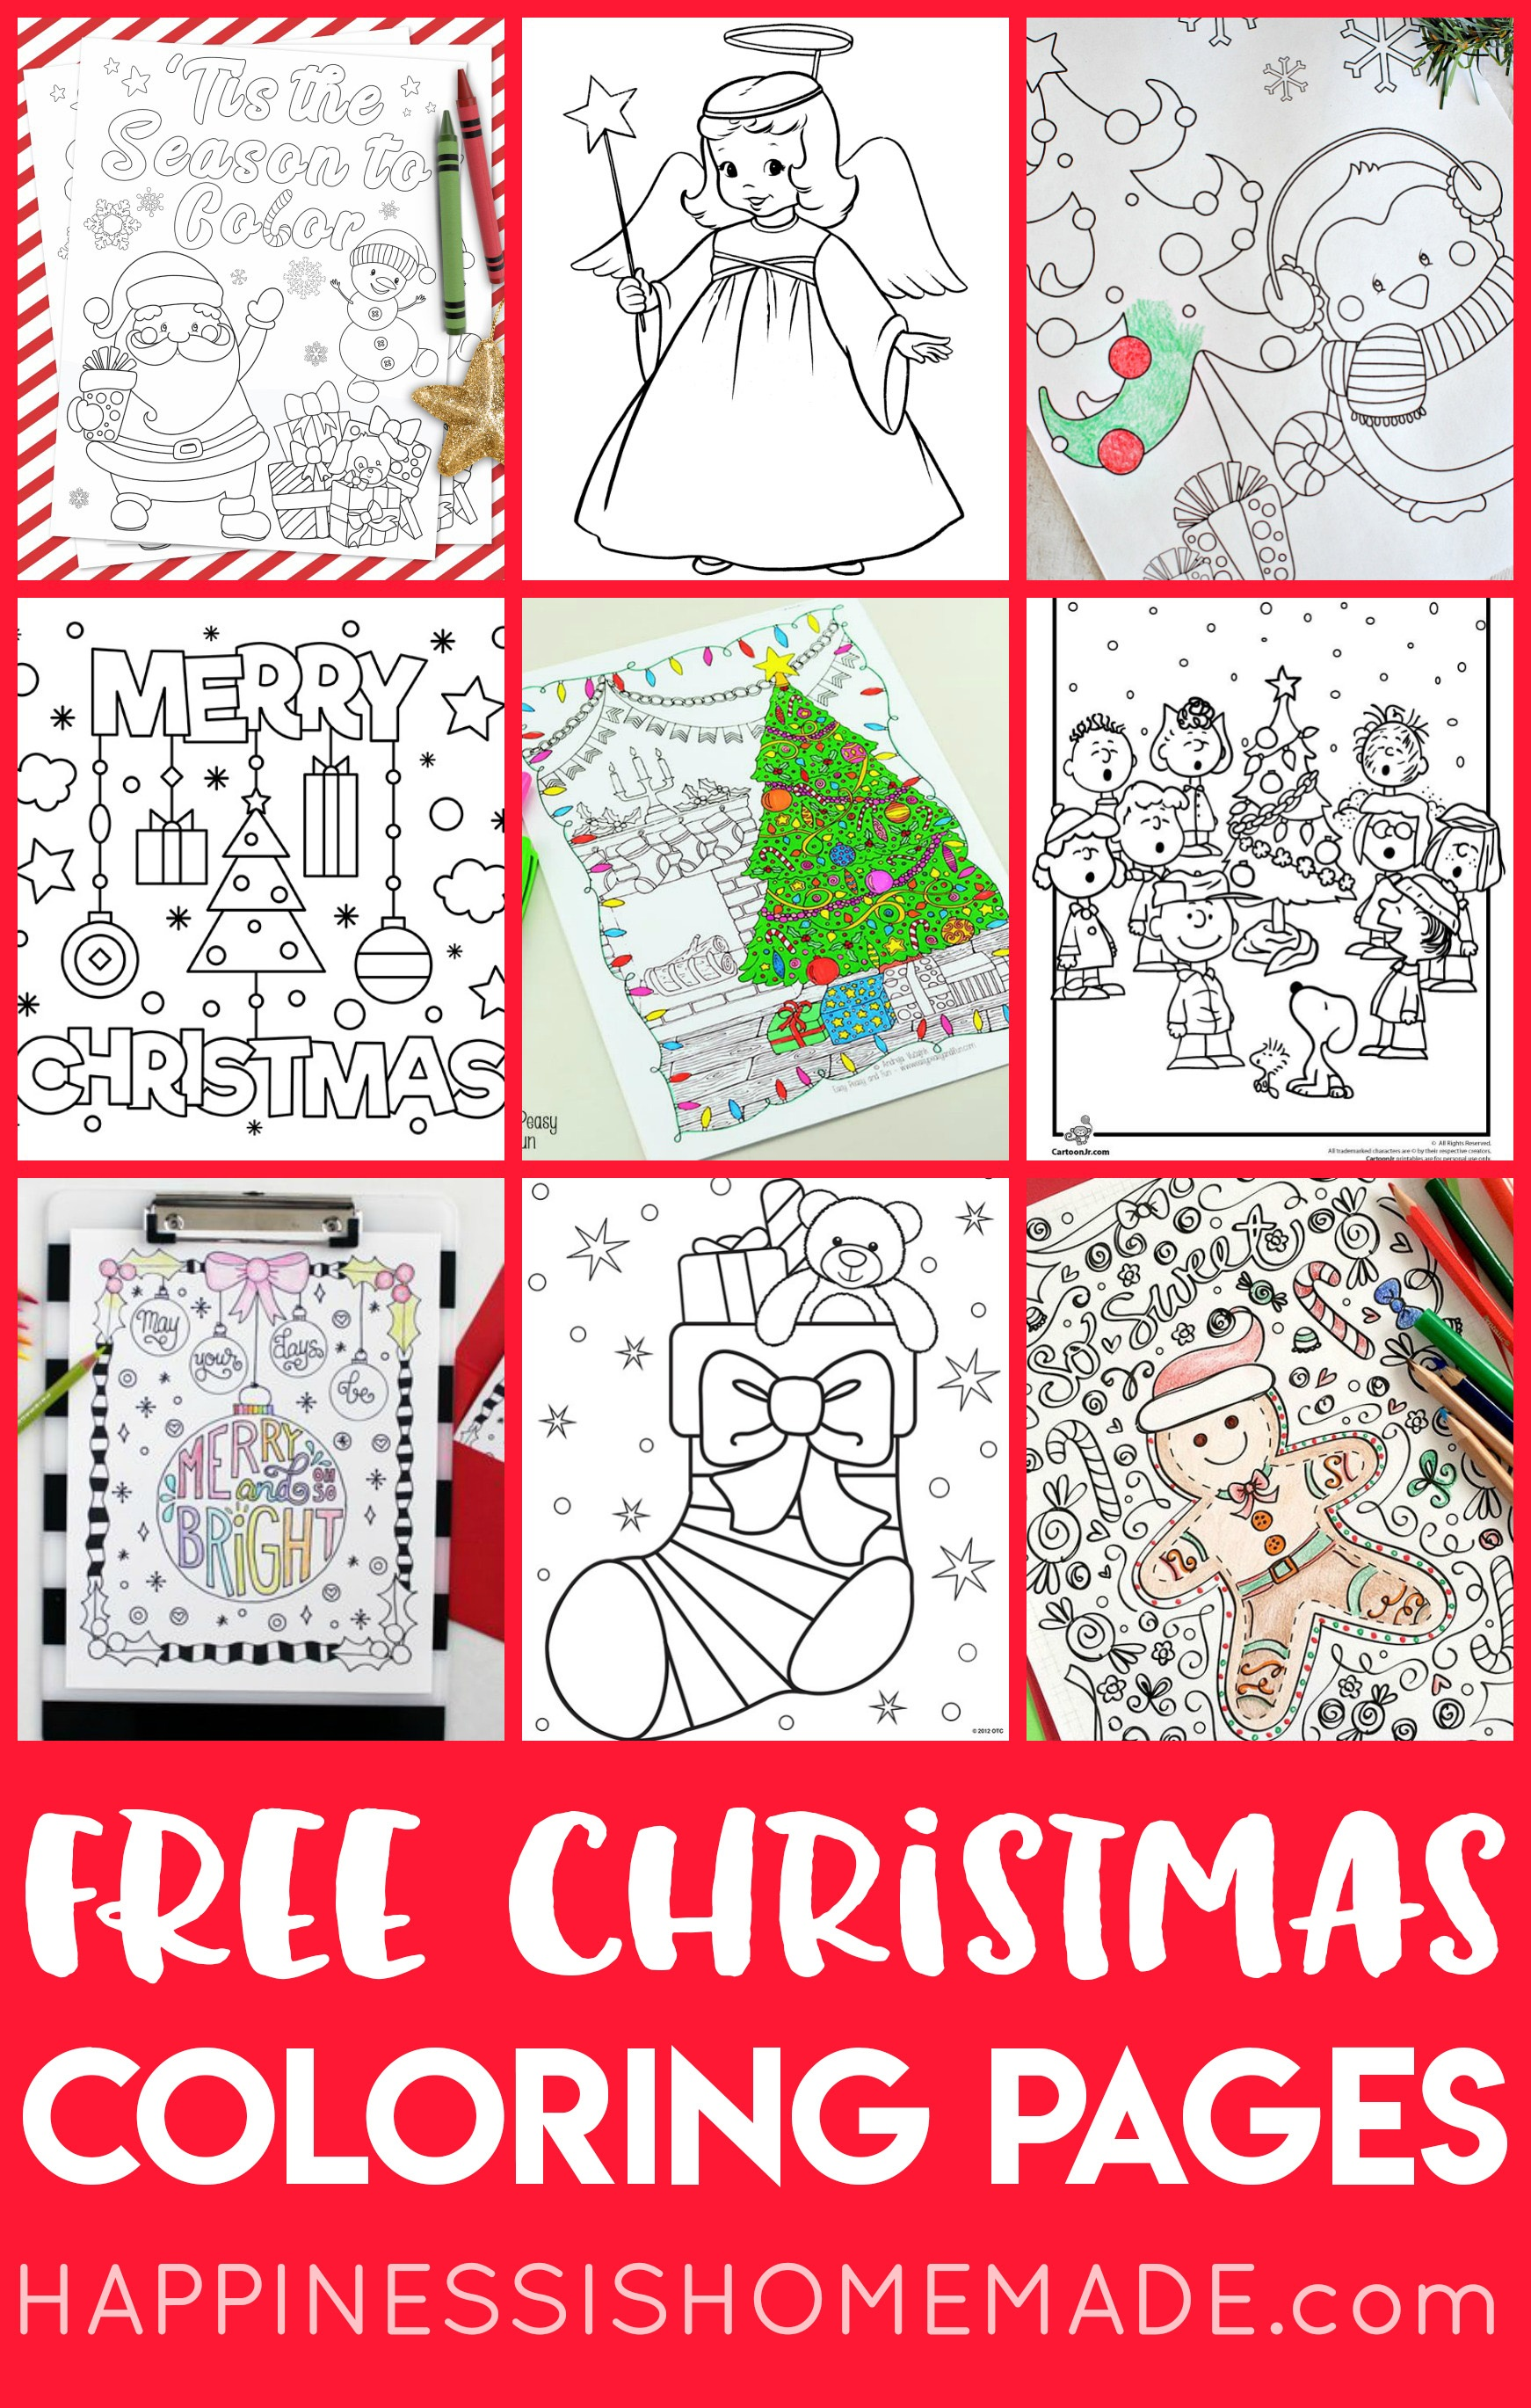 Free Christmas Coloring Pages For Adults And Kids - Happiness Is - Free Printable Christmas Books For Kindergarten